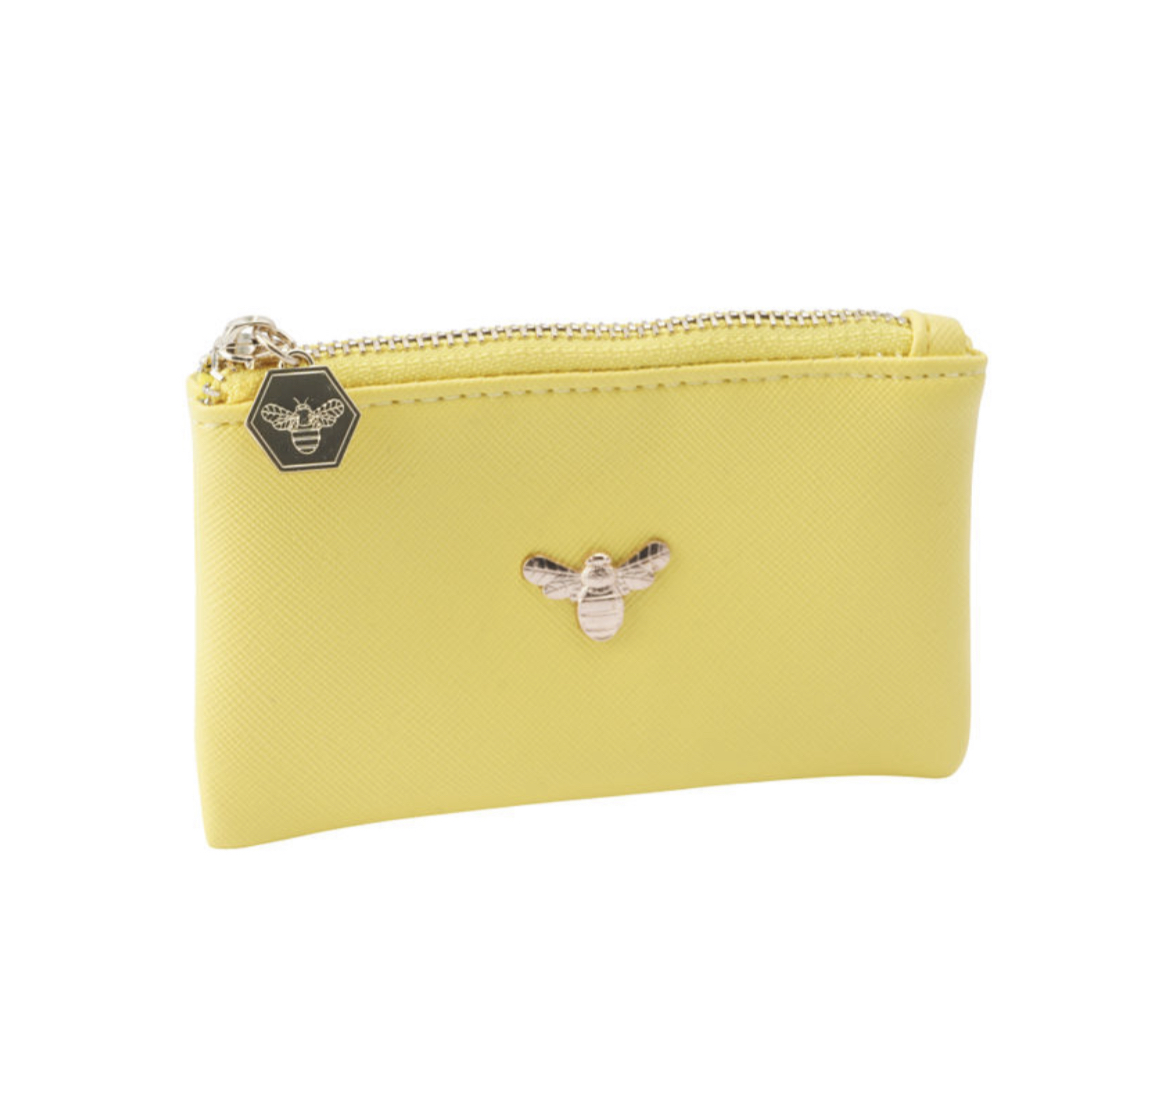 The beekeeper bee coin purse in yellow. Bumble bee.